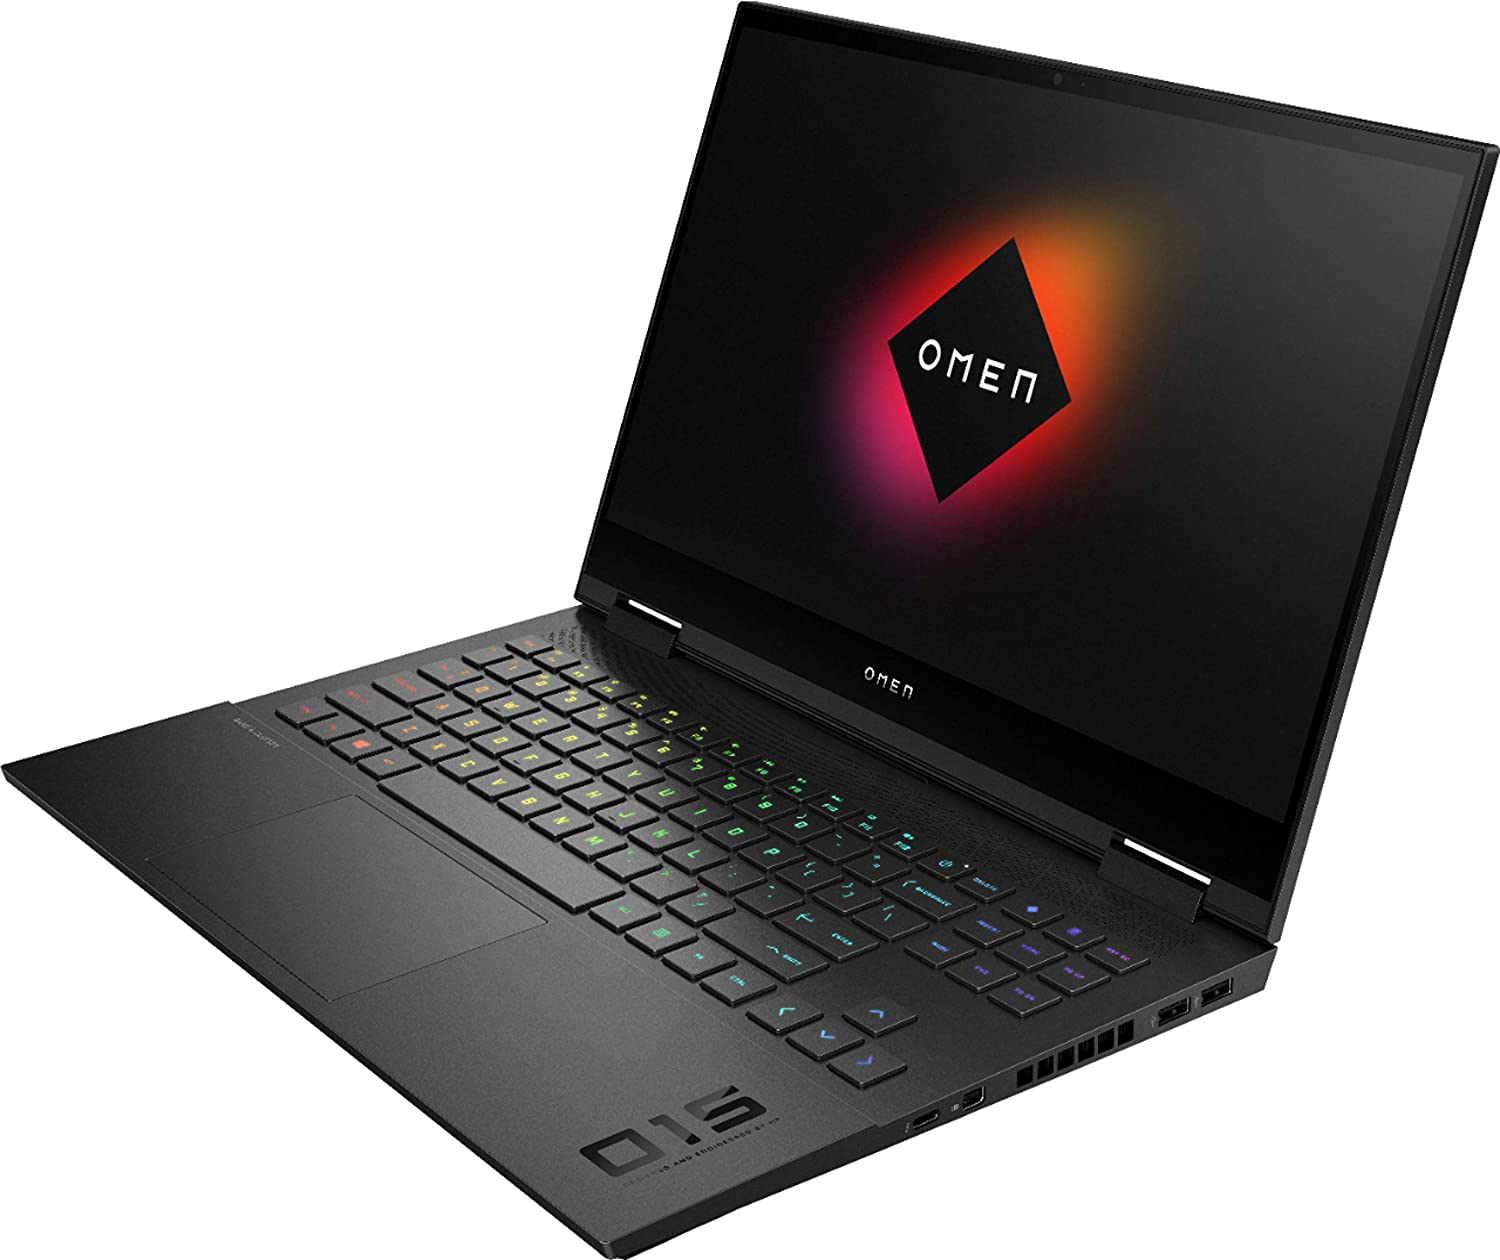 "Laptop HP OMEN 15-ek0013dx 15.6"" i7-10750H 16GB RAM 512GB SSD 32GB Intel Optane RTX 2060 6GB Negra W10 Home"